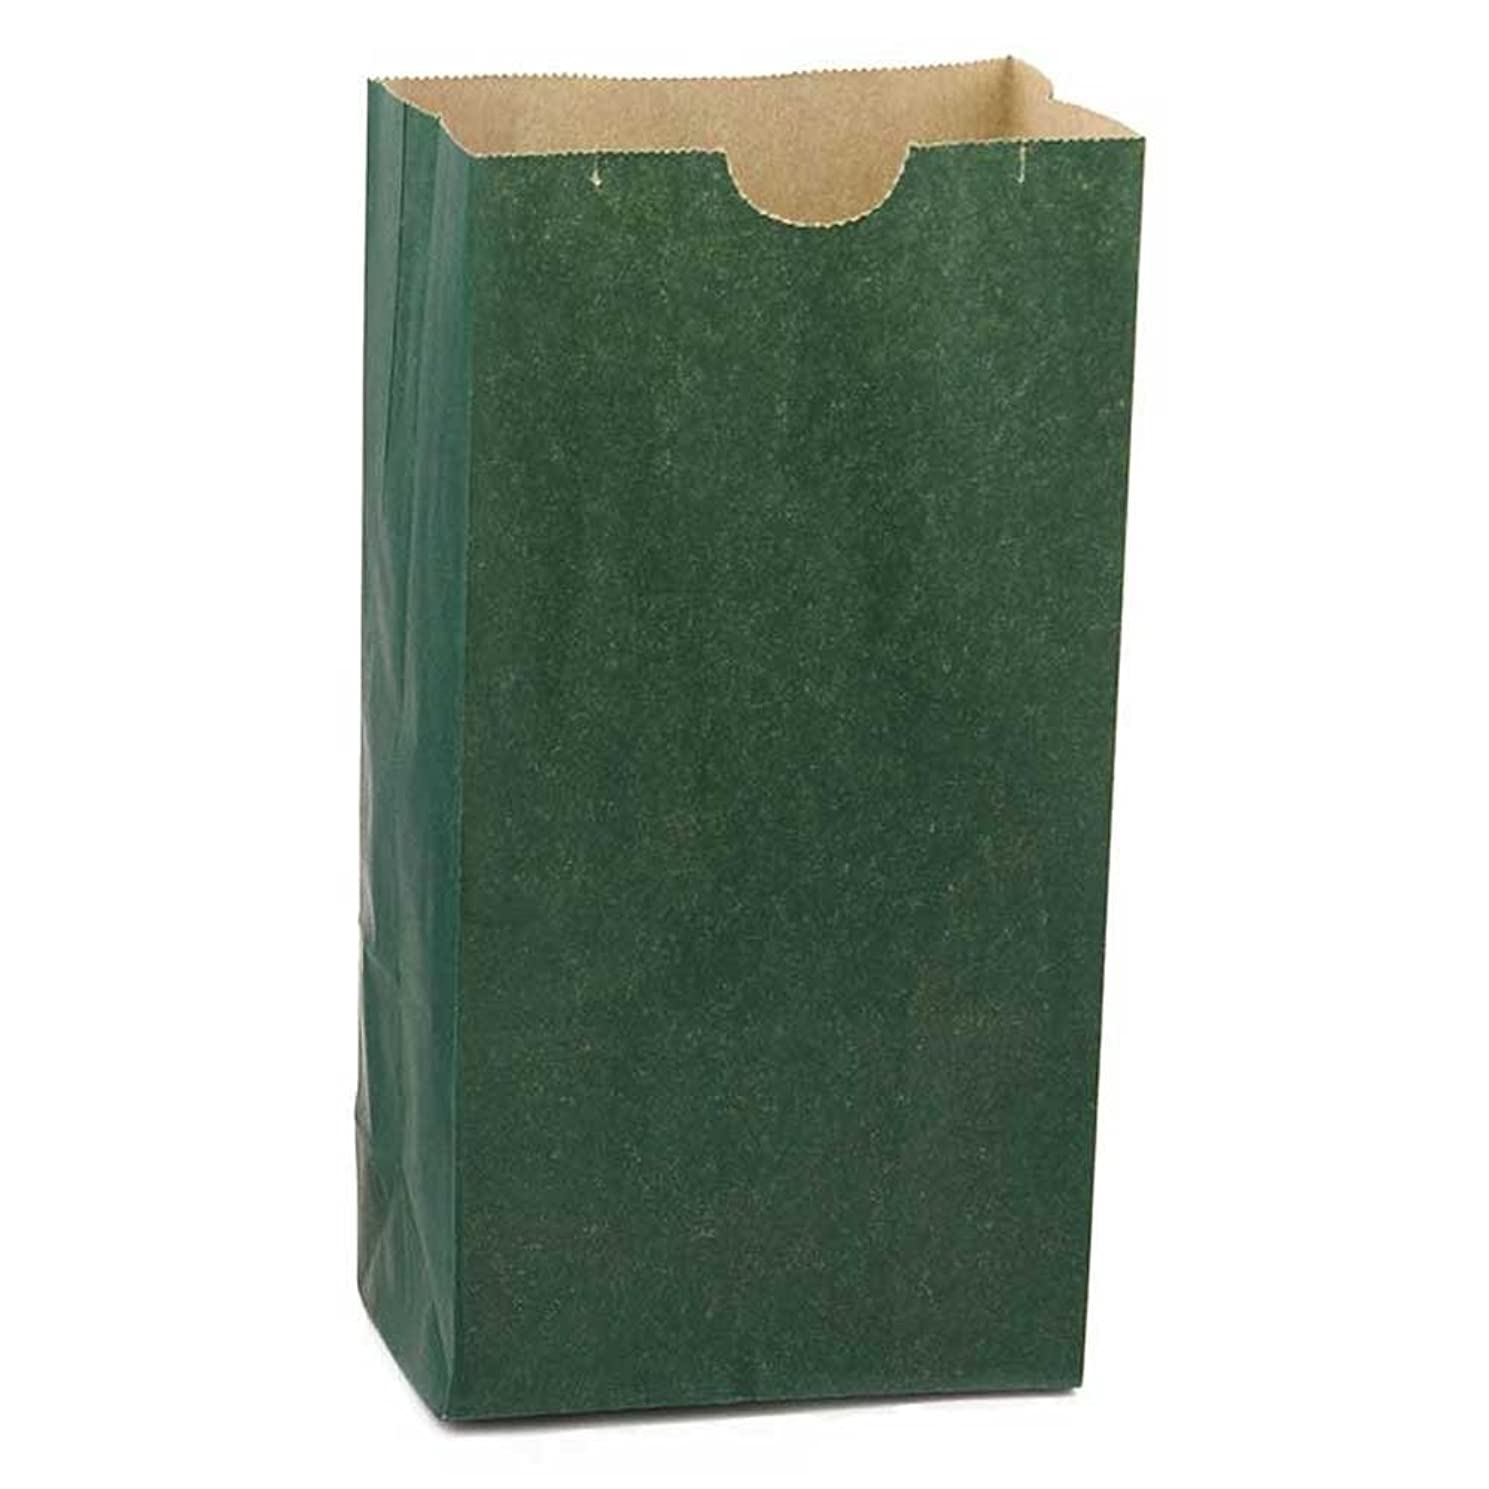 Hygloss Products Dark Green Paper Bags – For Party Favors, Arts, Crafts 4.5 x 8.5 x 2.5 Inch, 100 Pack